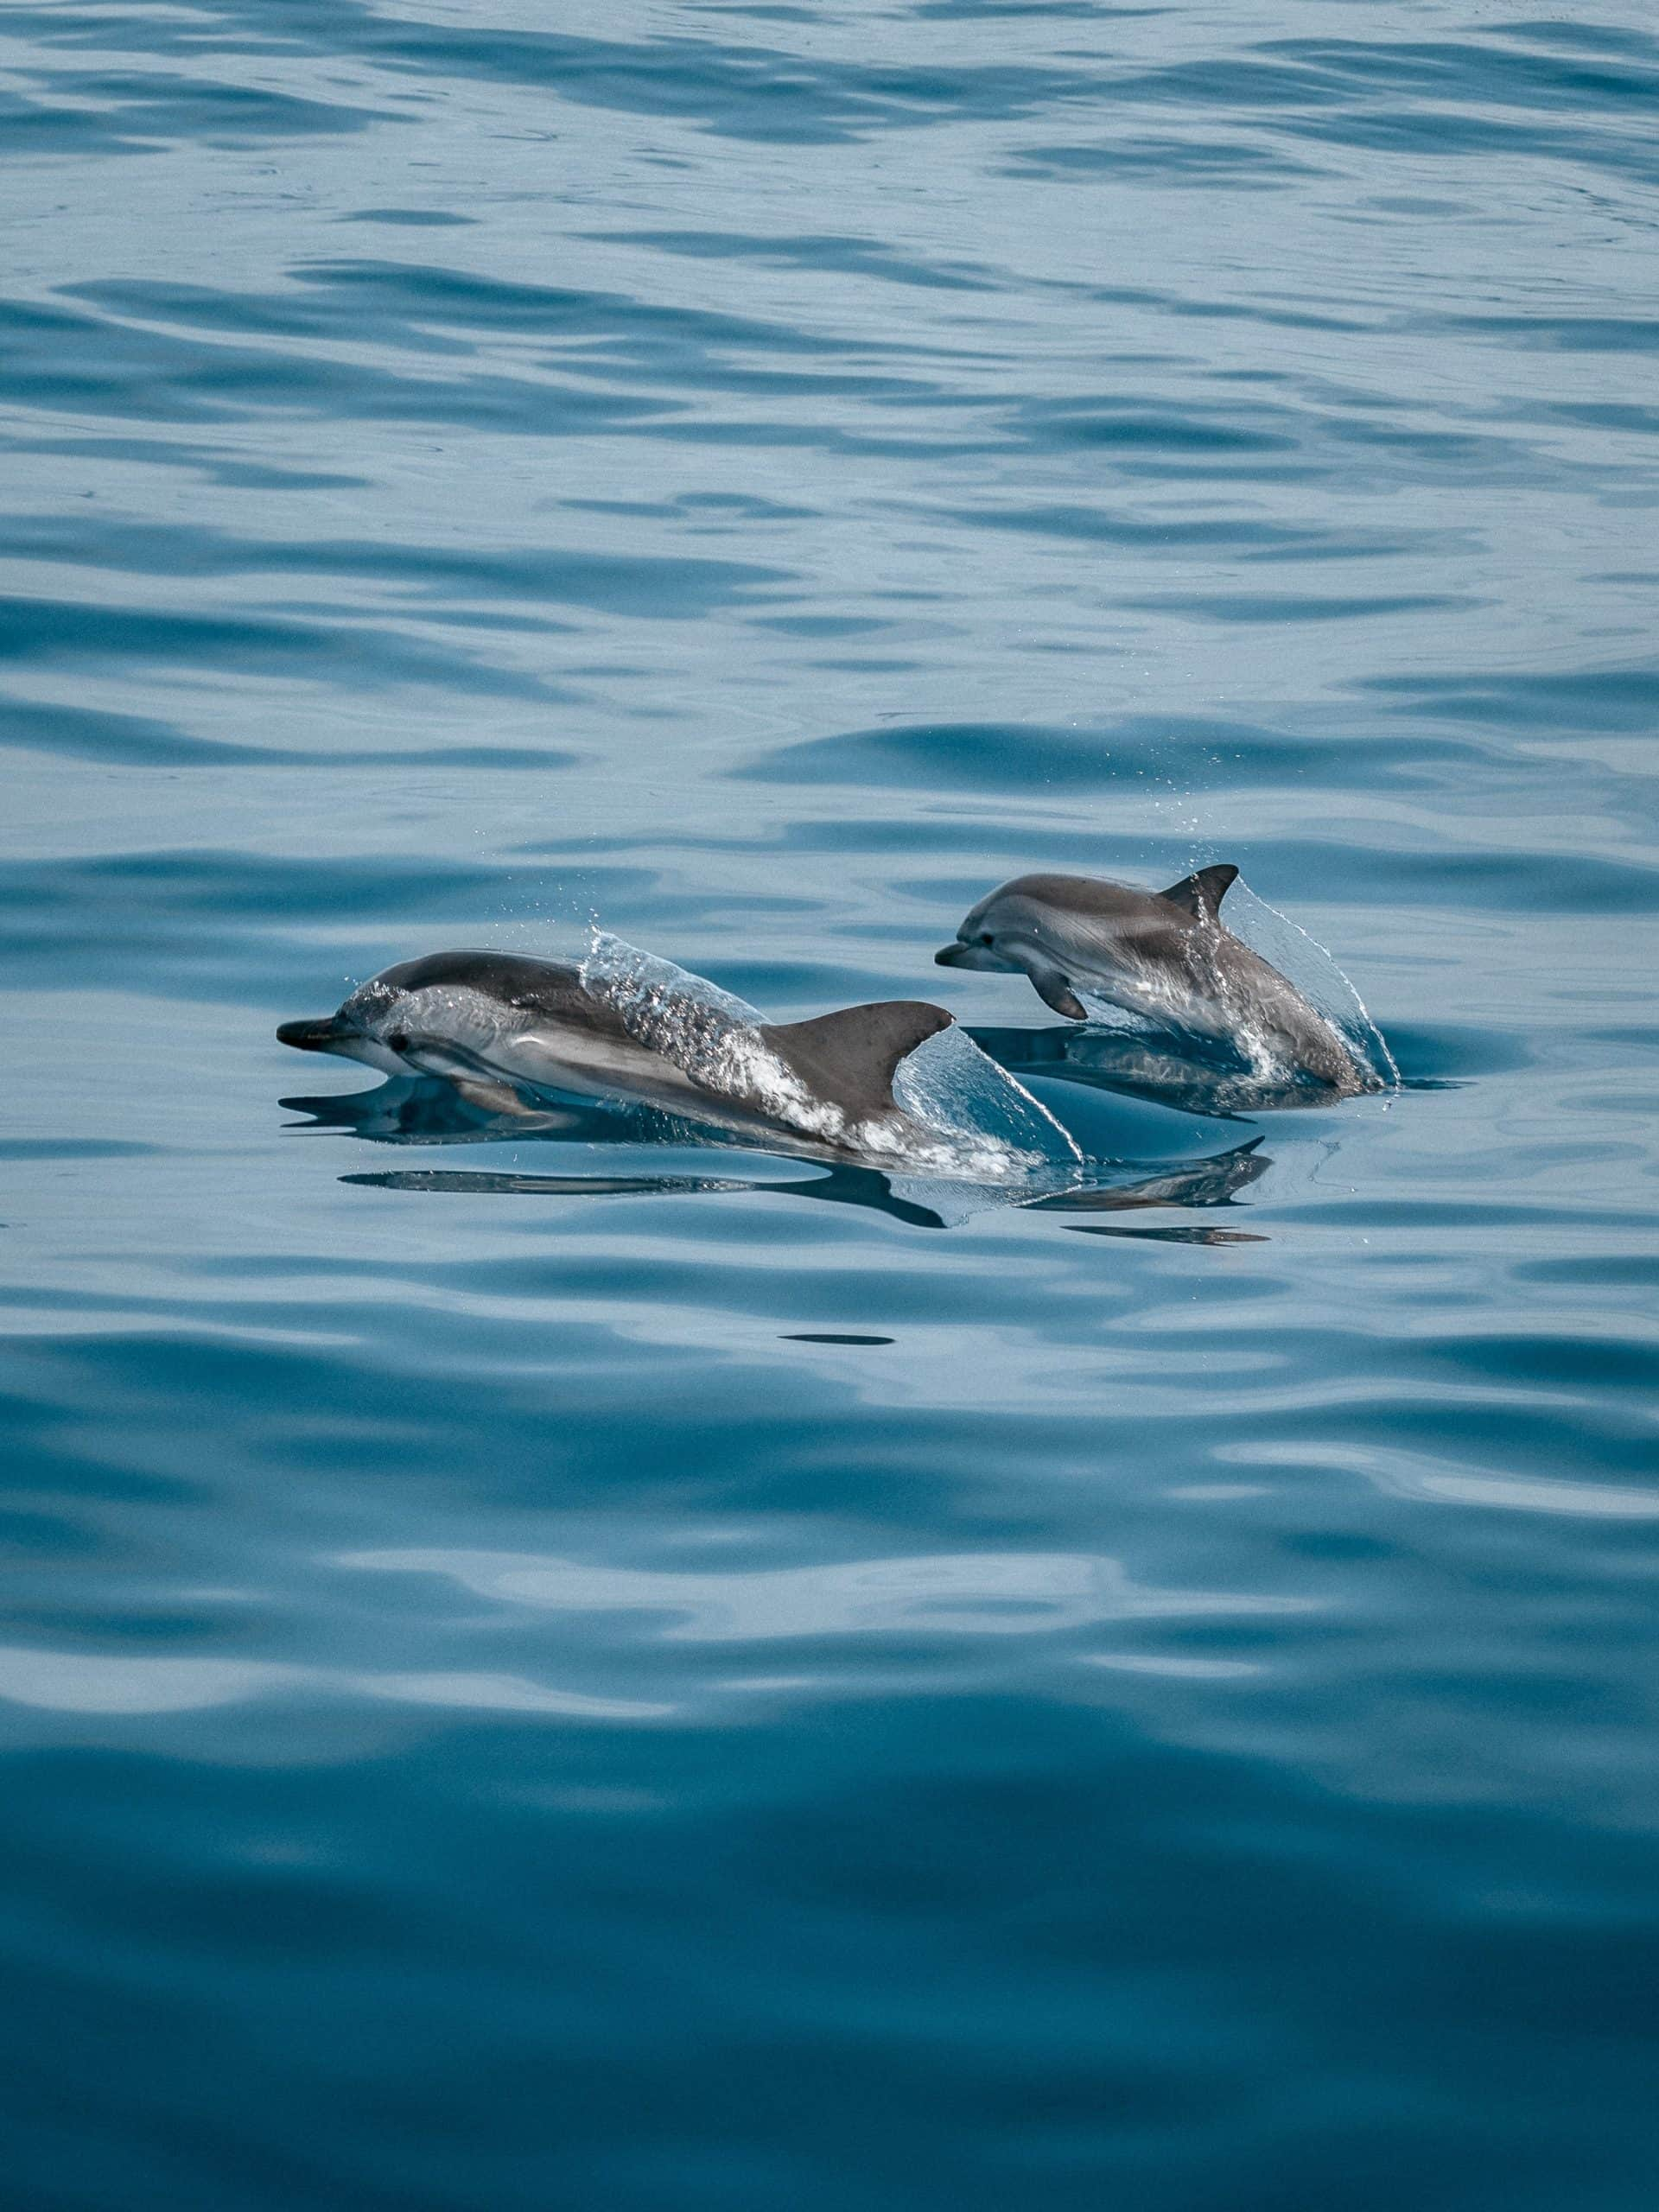 10 Interesting Facts About Dolphins